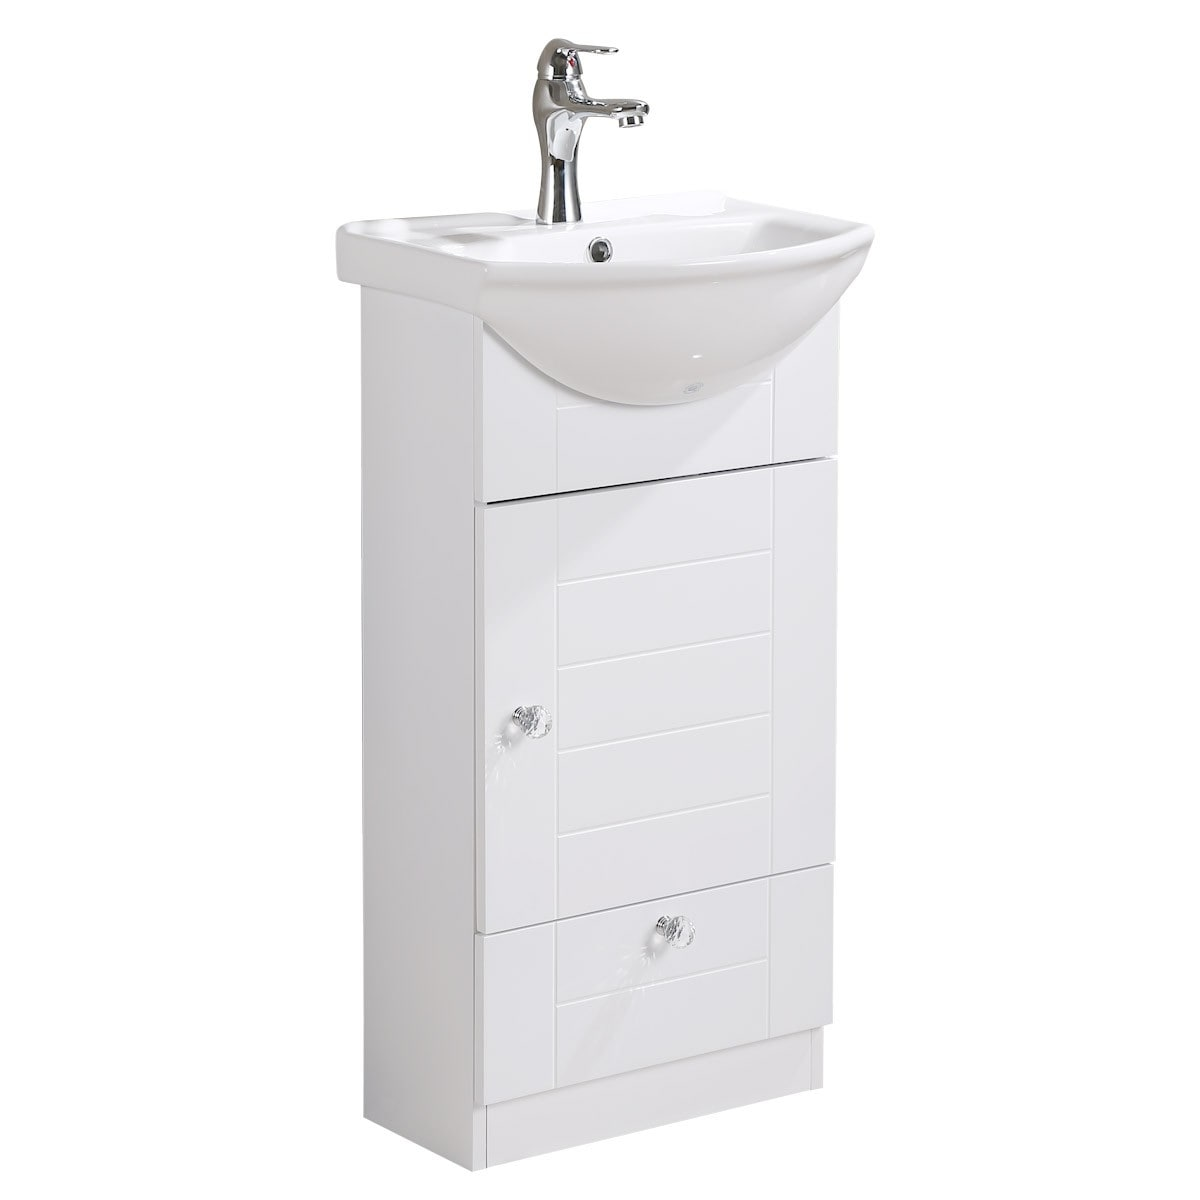 . Renovators Supply Small Wall Mounted Cabinet Vanity Bathroom Sink With  Faucet